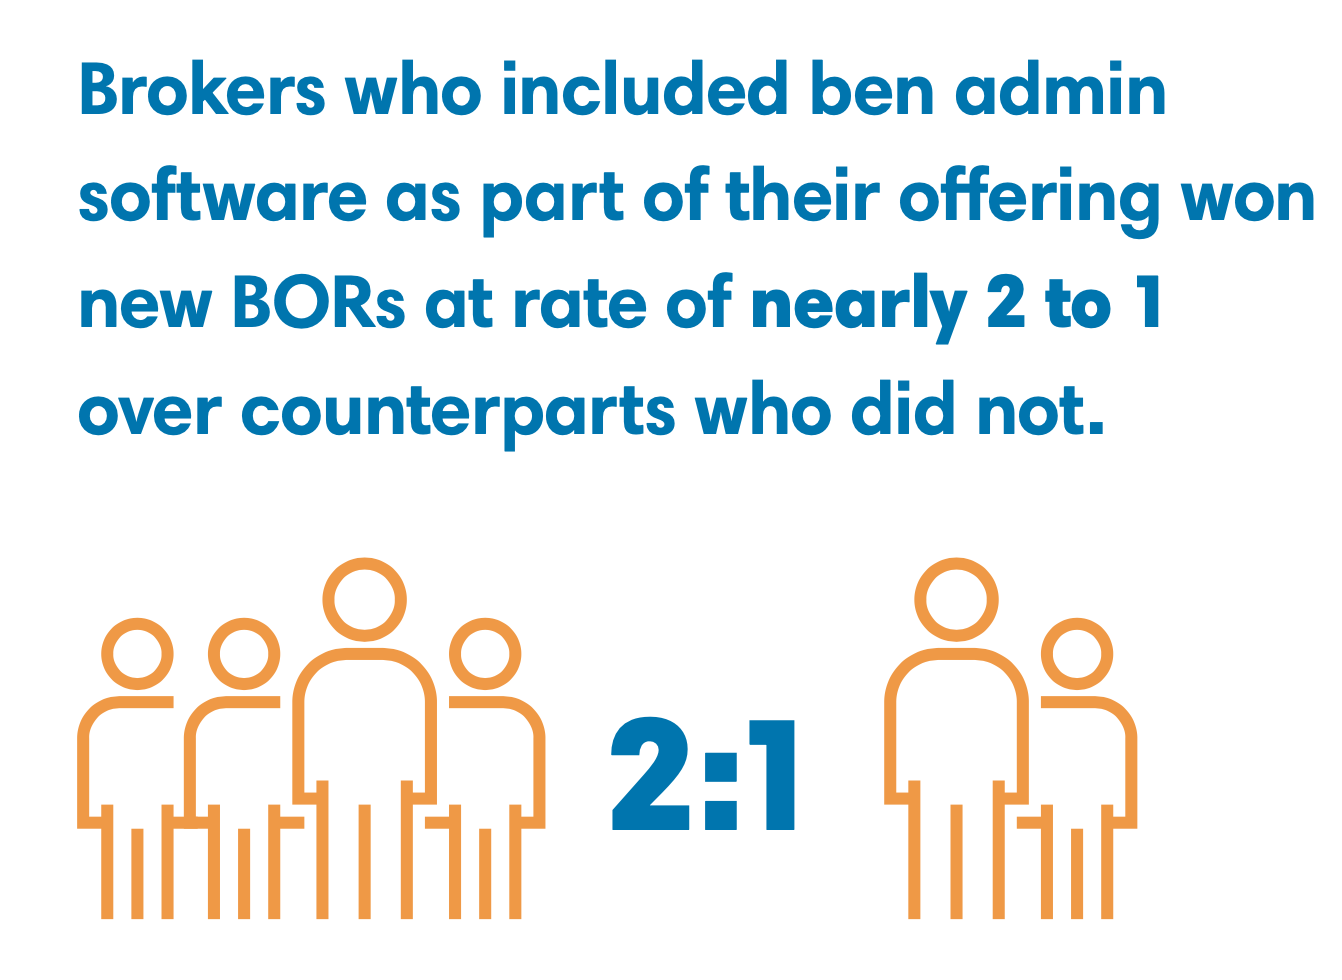 broker with ben admin tech win new BORs